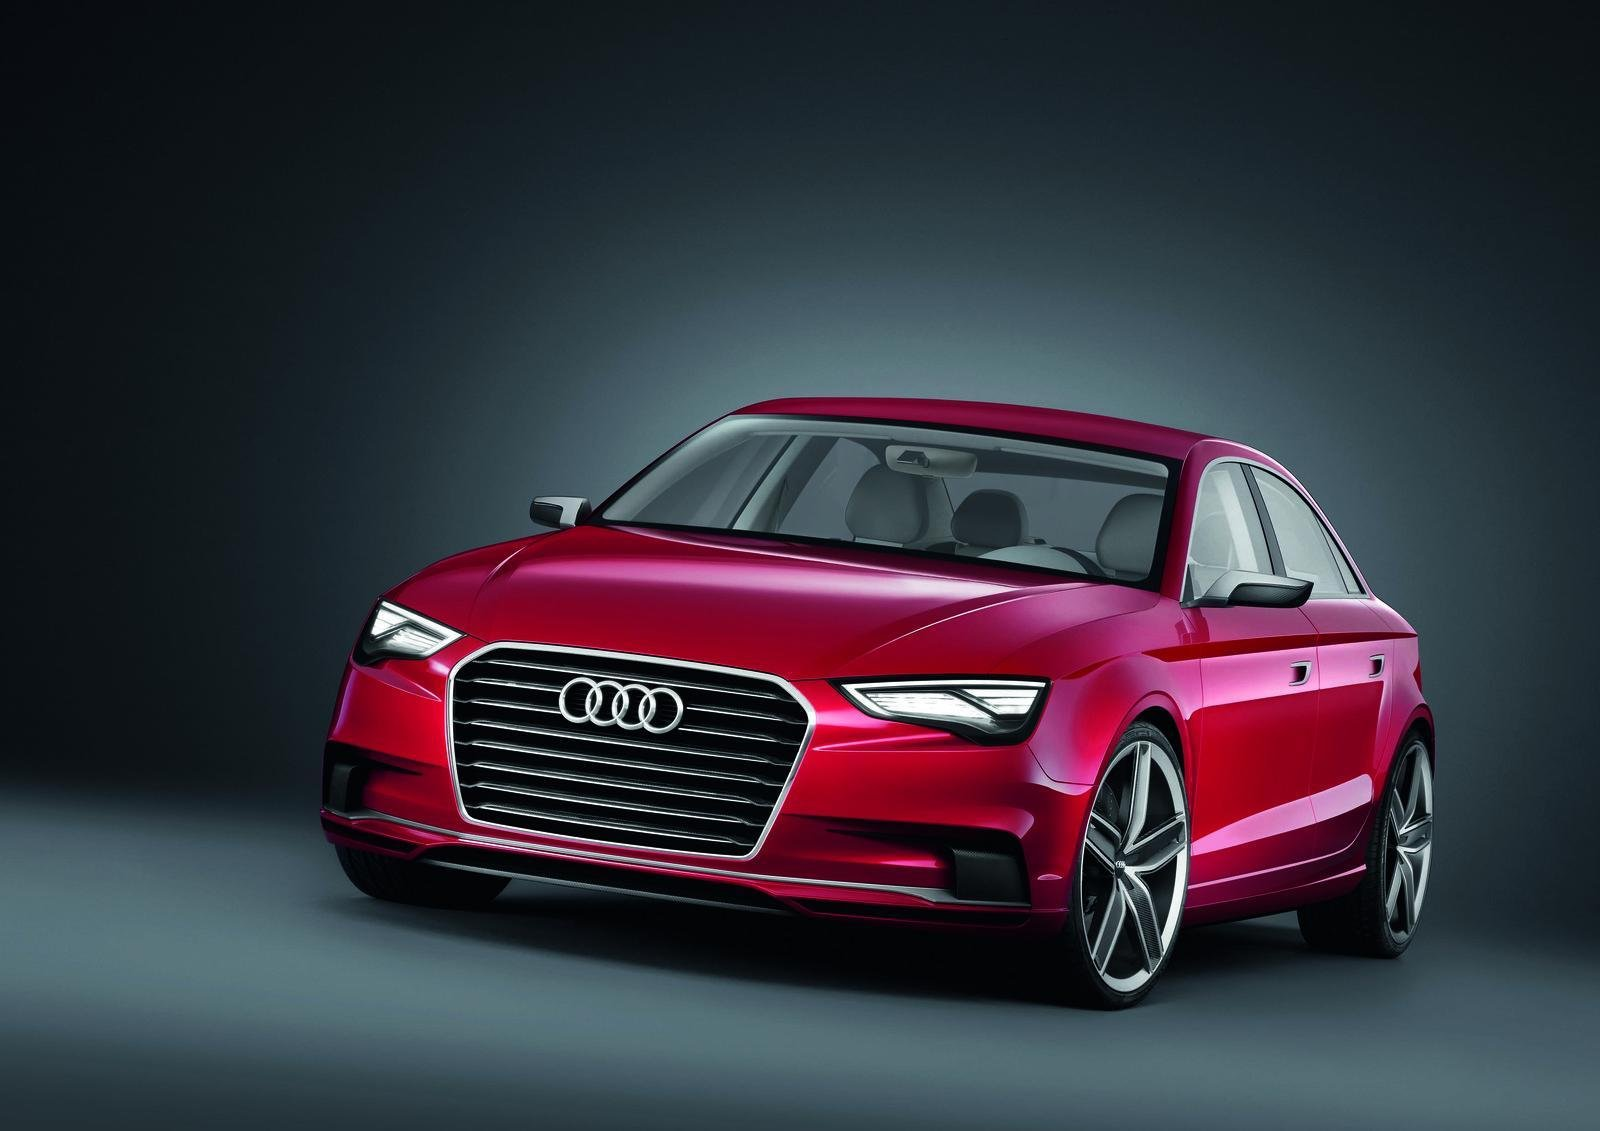 2011 audi a3 concept review top speed. Black Bedroom Furniture Sets. Home Design Ideas